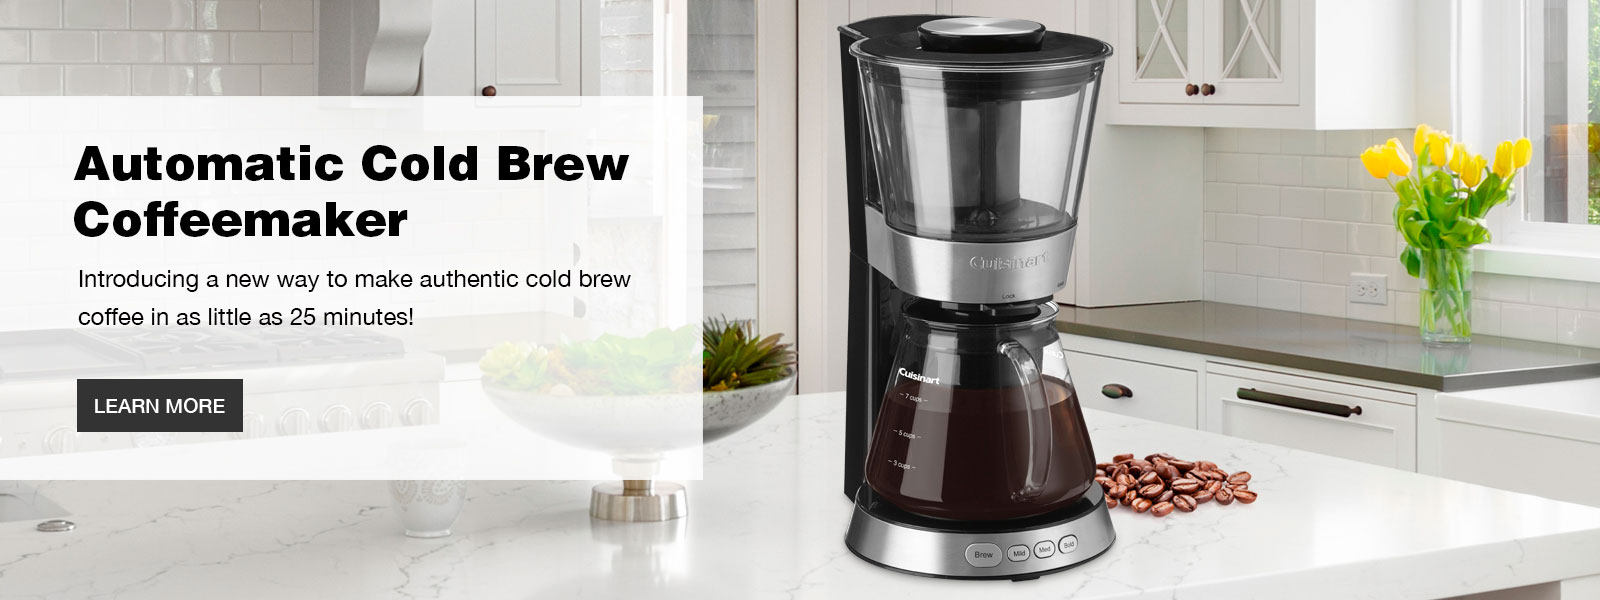 7-Cup Automatic Cold Brew Coffeemaker